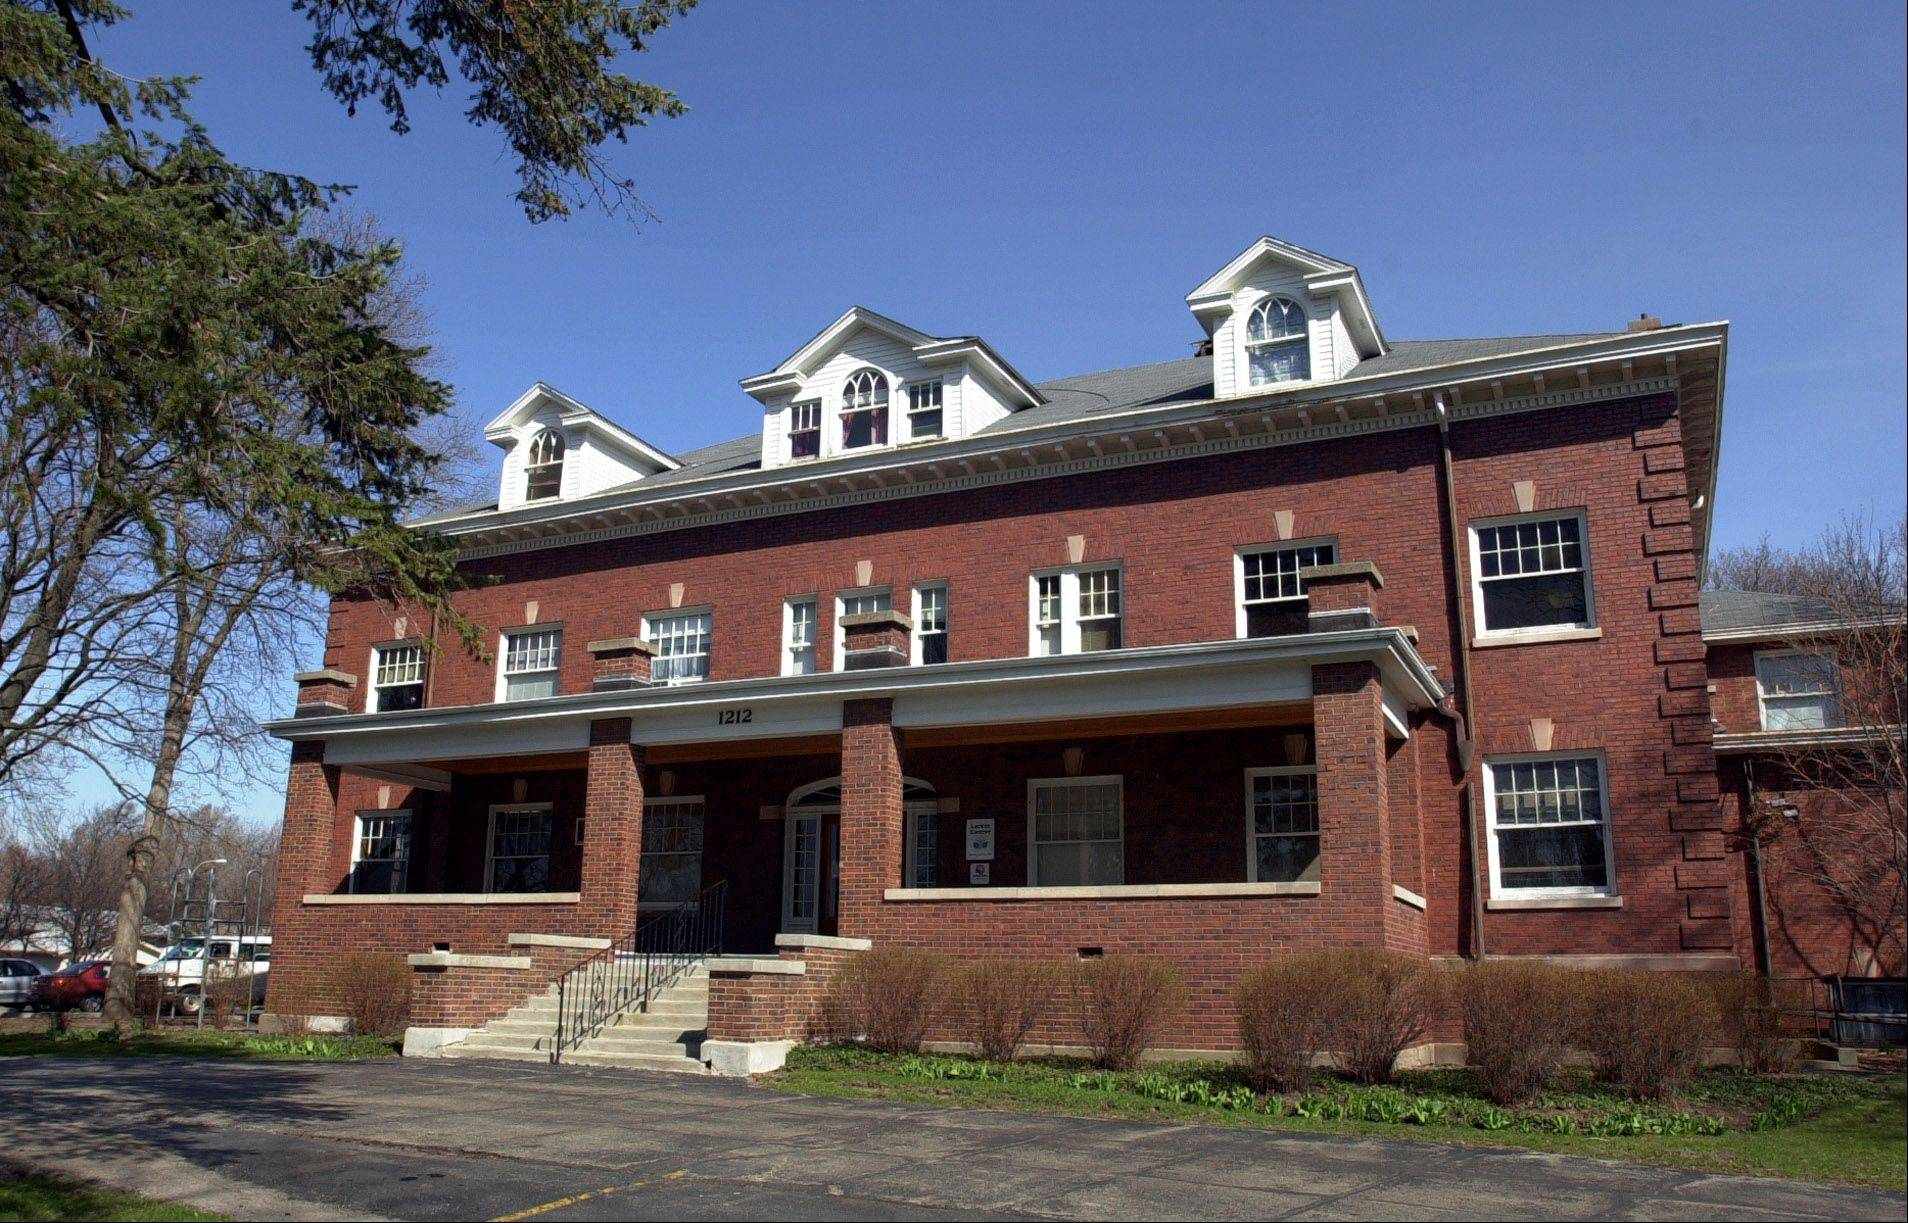 The original Larkin Center building in Elgin opened in 1896.